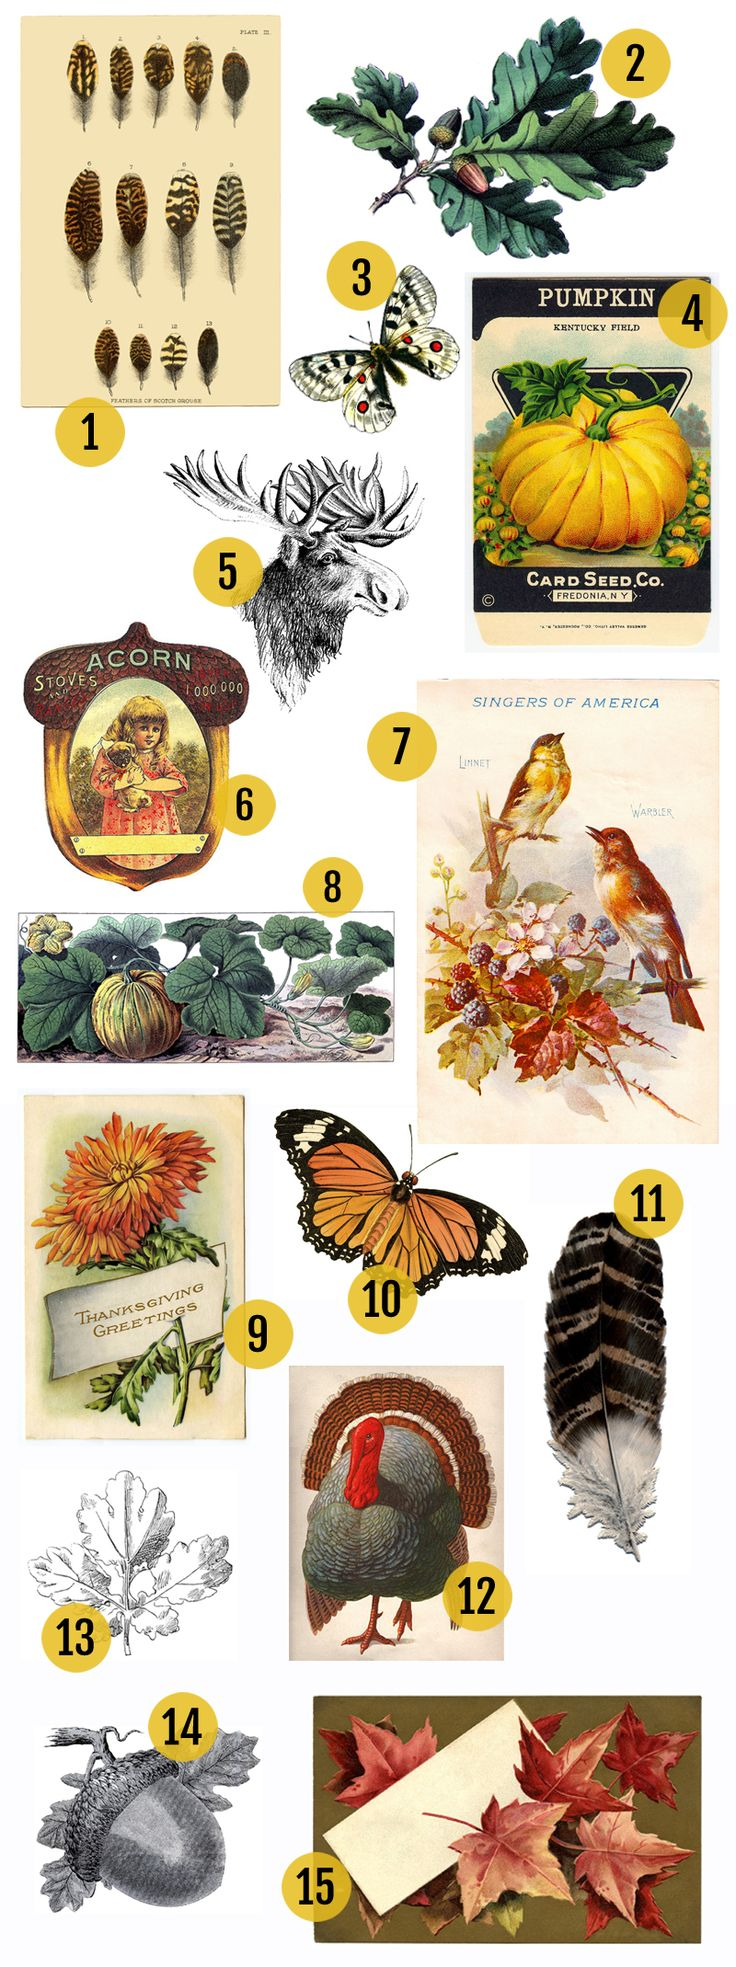 Vintage Fall Clip Art Round Up! From Maggie Holmes blog - her favorite free fall vintage images with links to each one.